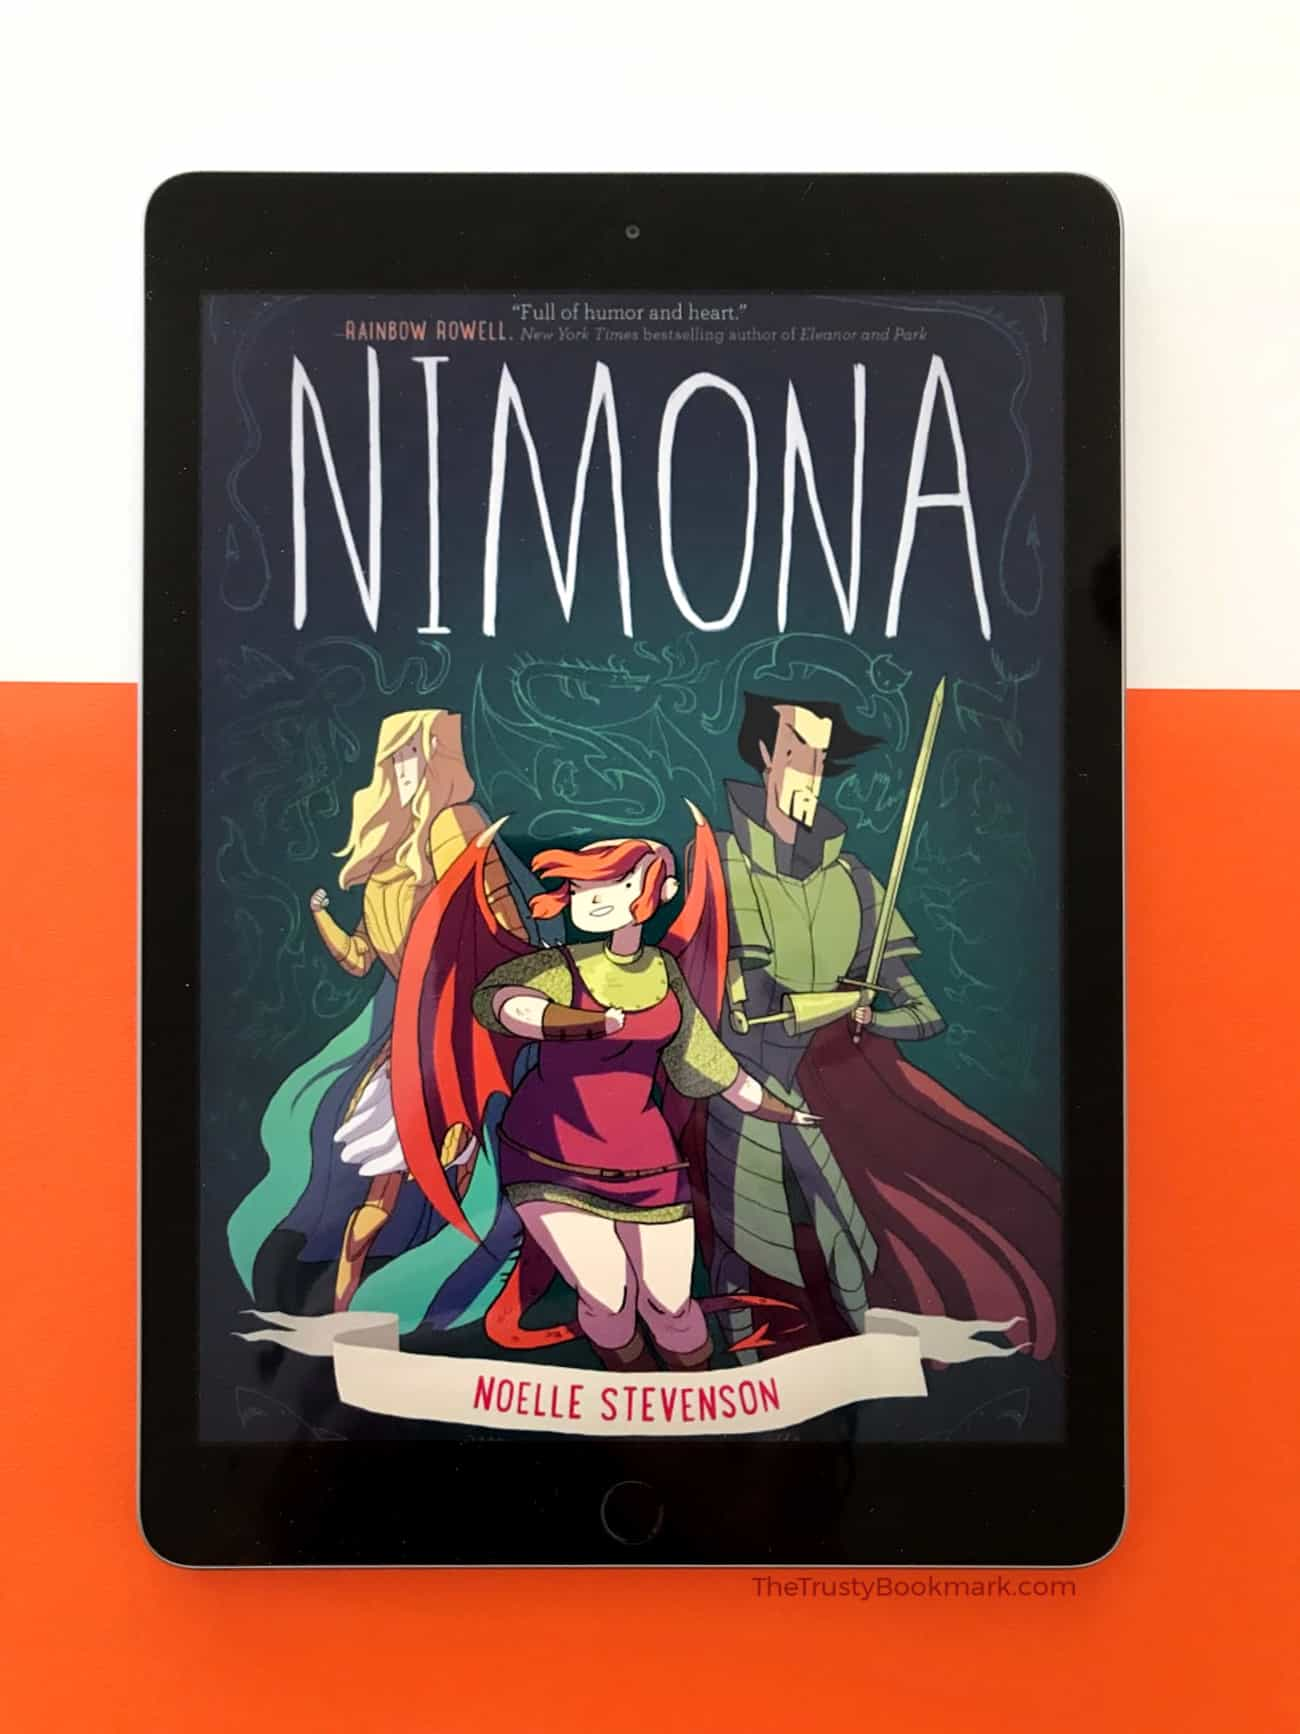 Book Review: Nimona [The Trusty Bookmark]